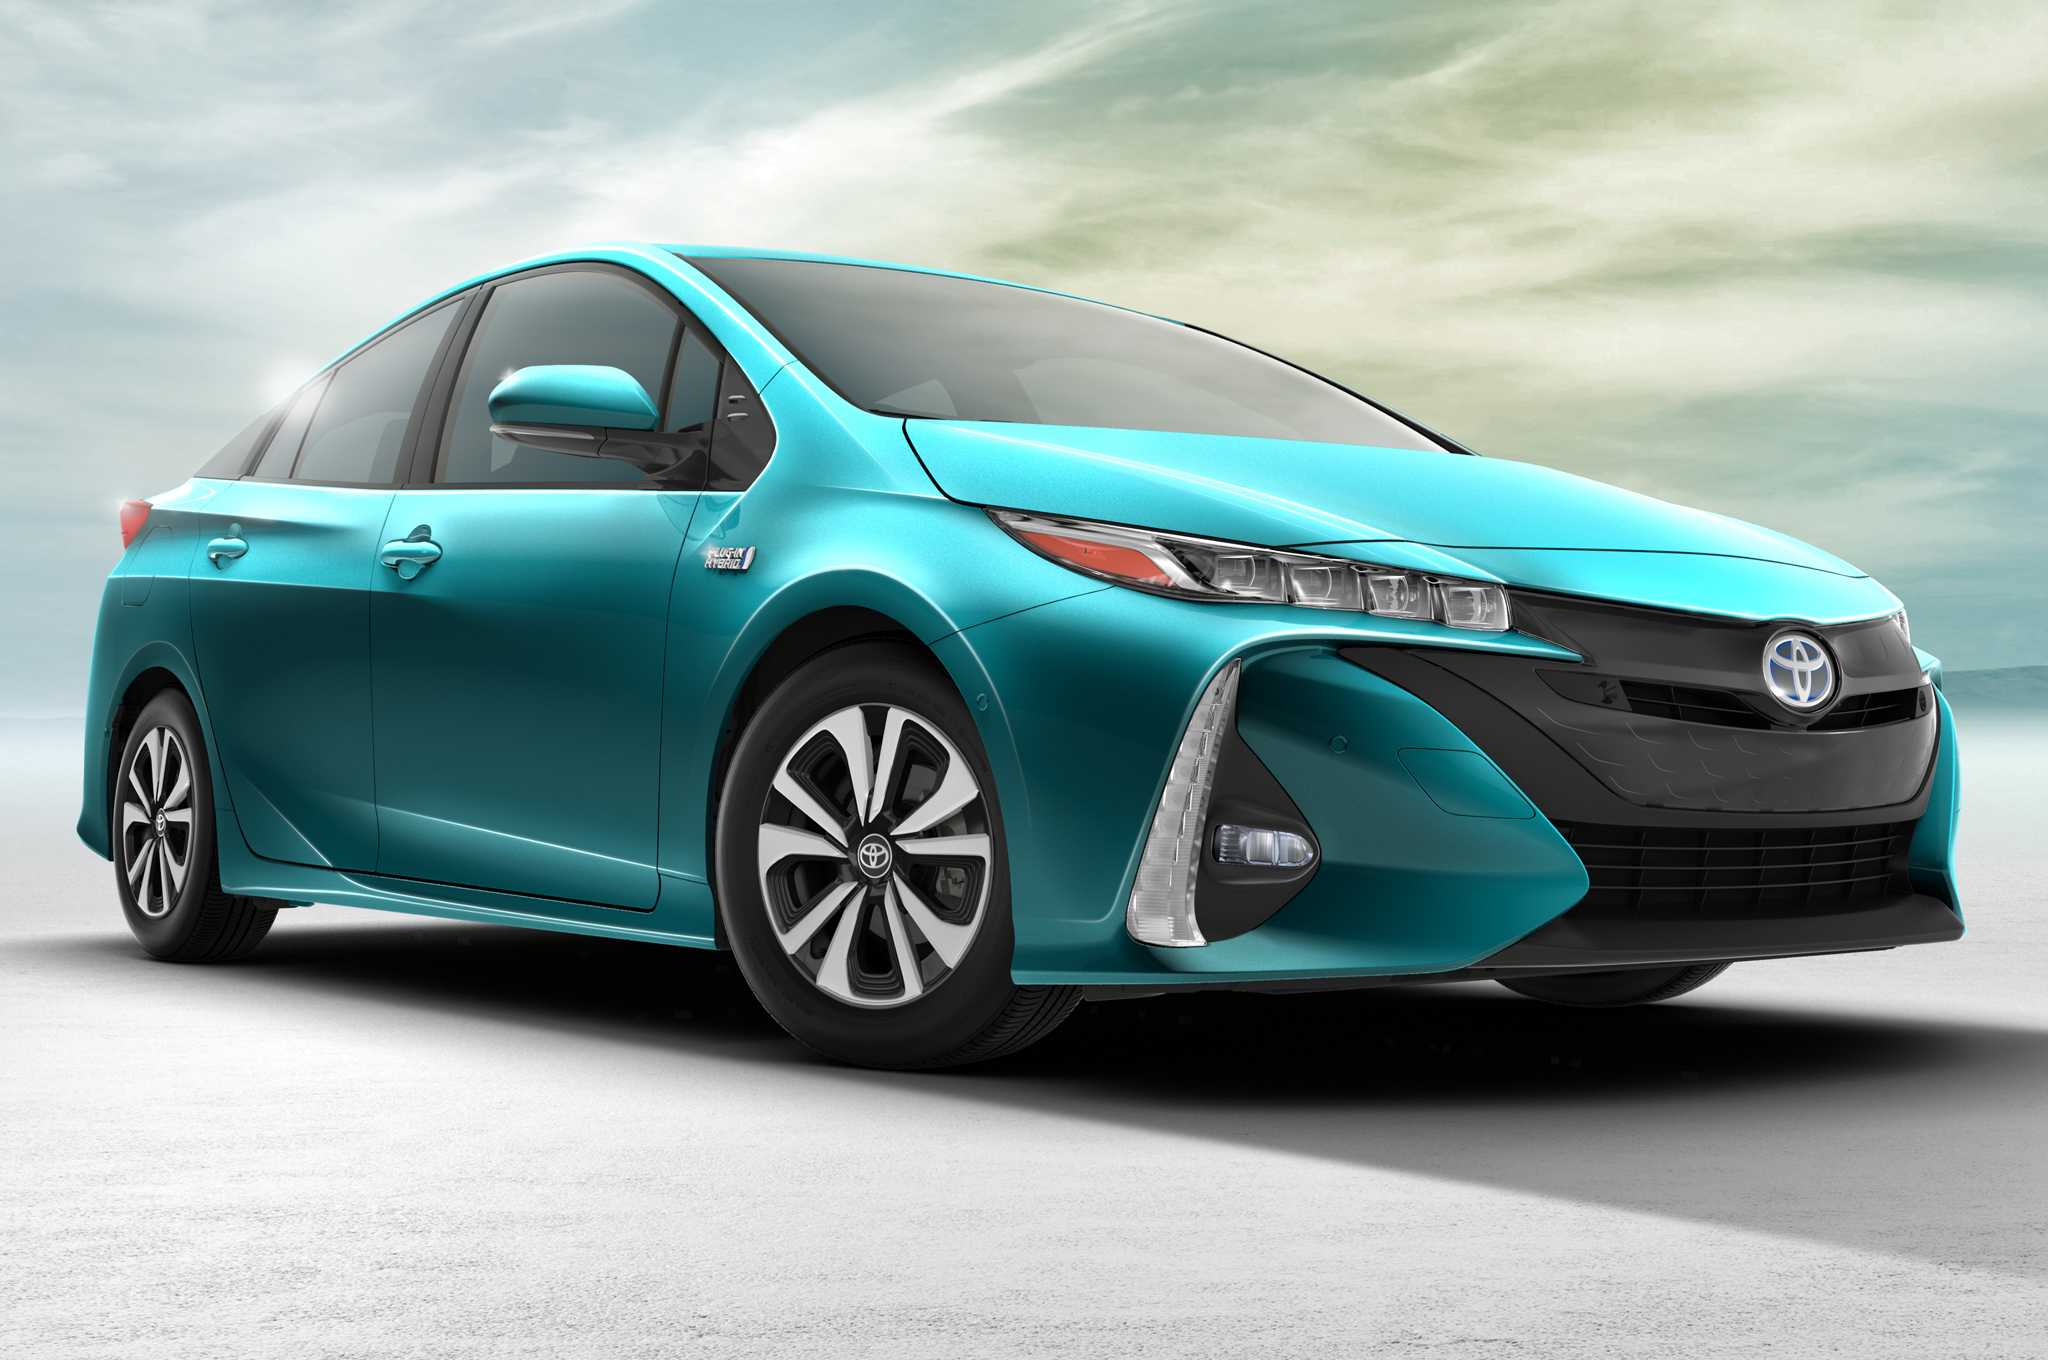 Toyota Prius Plug-in to Integrate Solar Panels in Japanese Edition